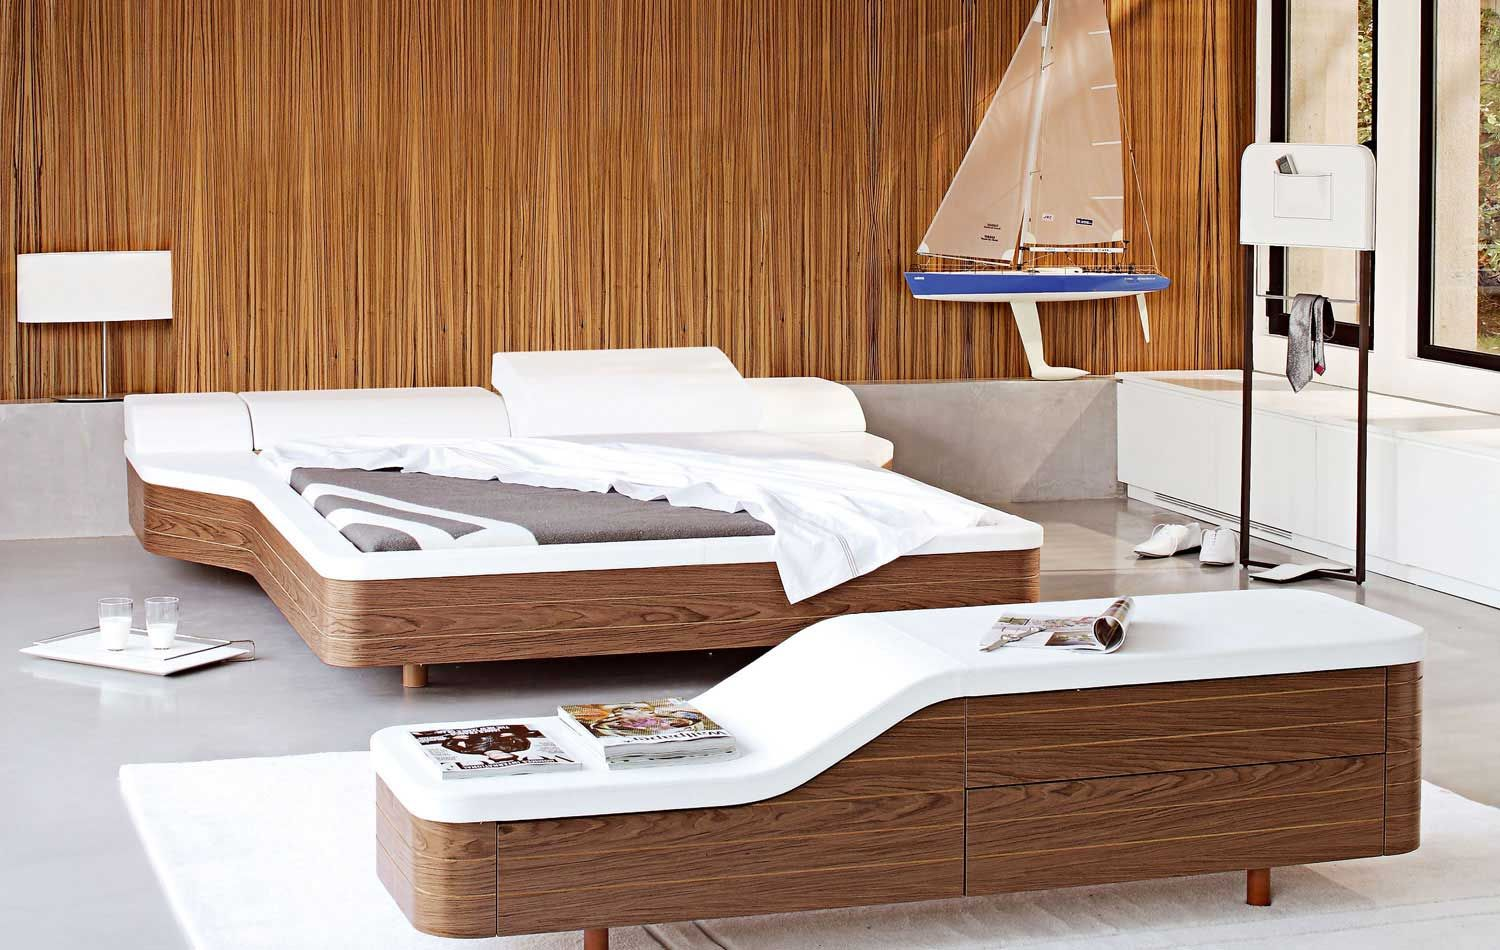 Bedroom Inspiration: 20 Modern Beds by Roche Bobois | Bedrooms ...